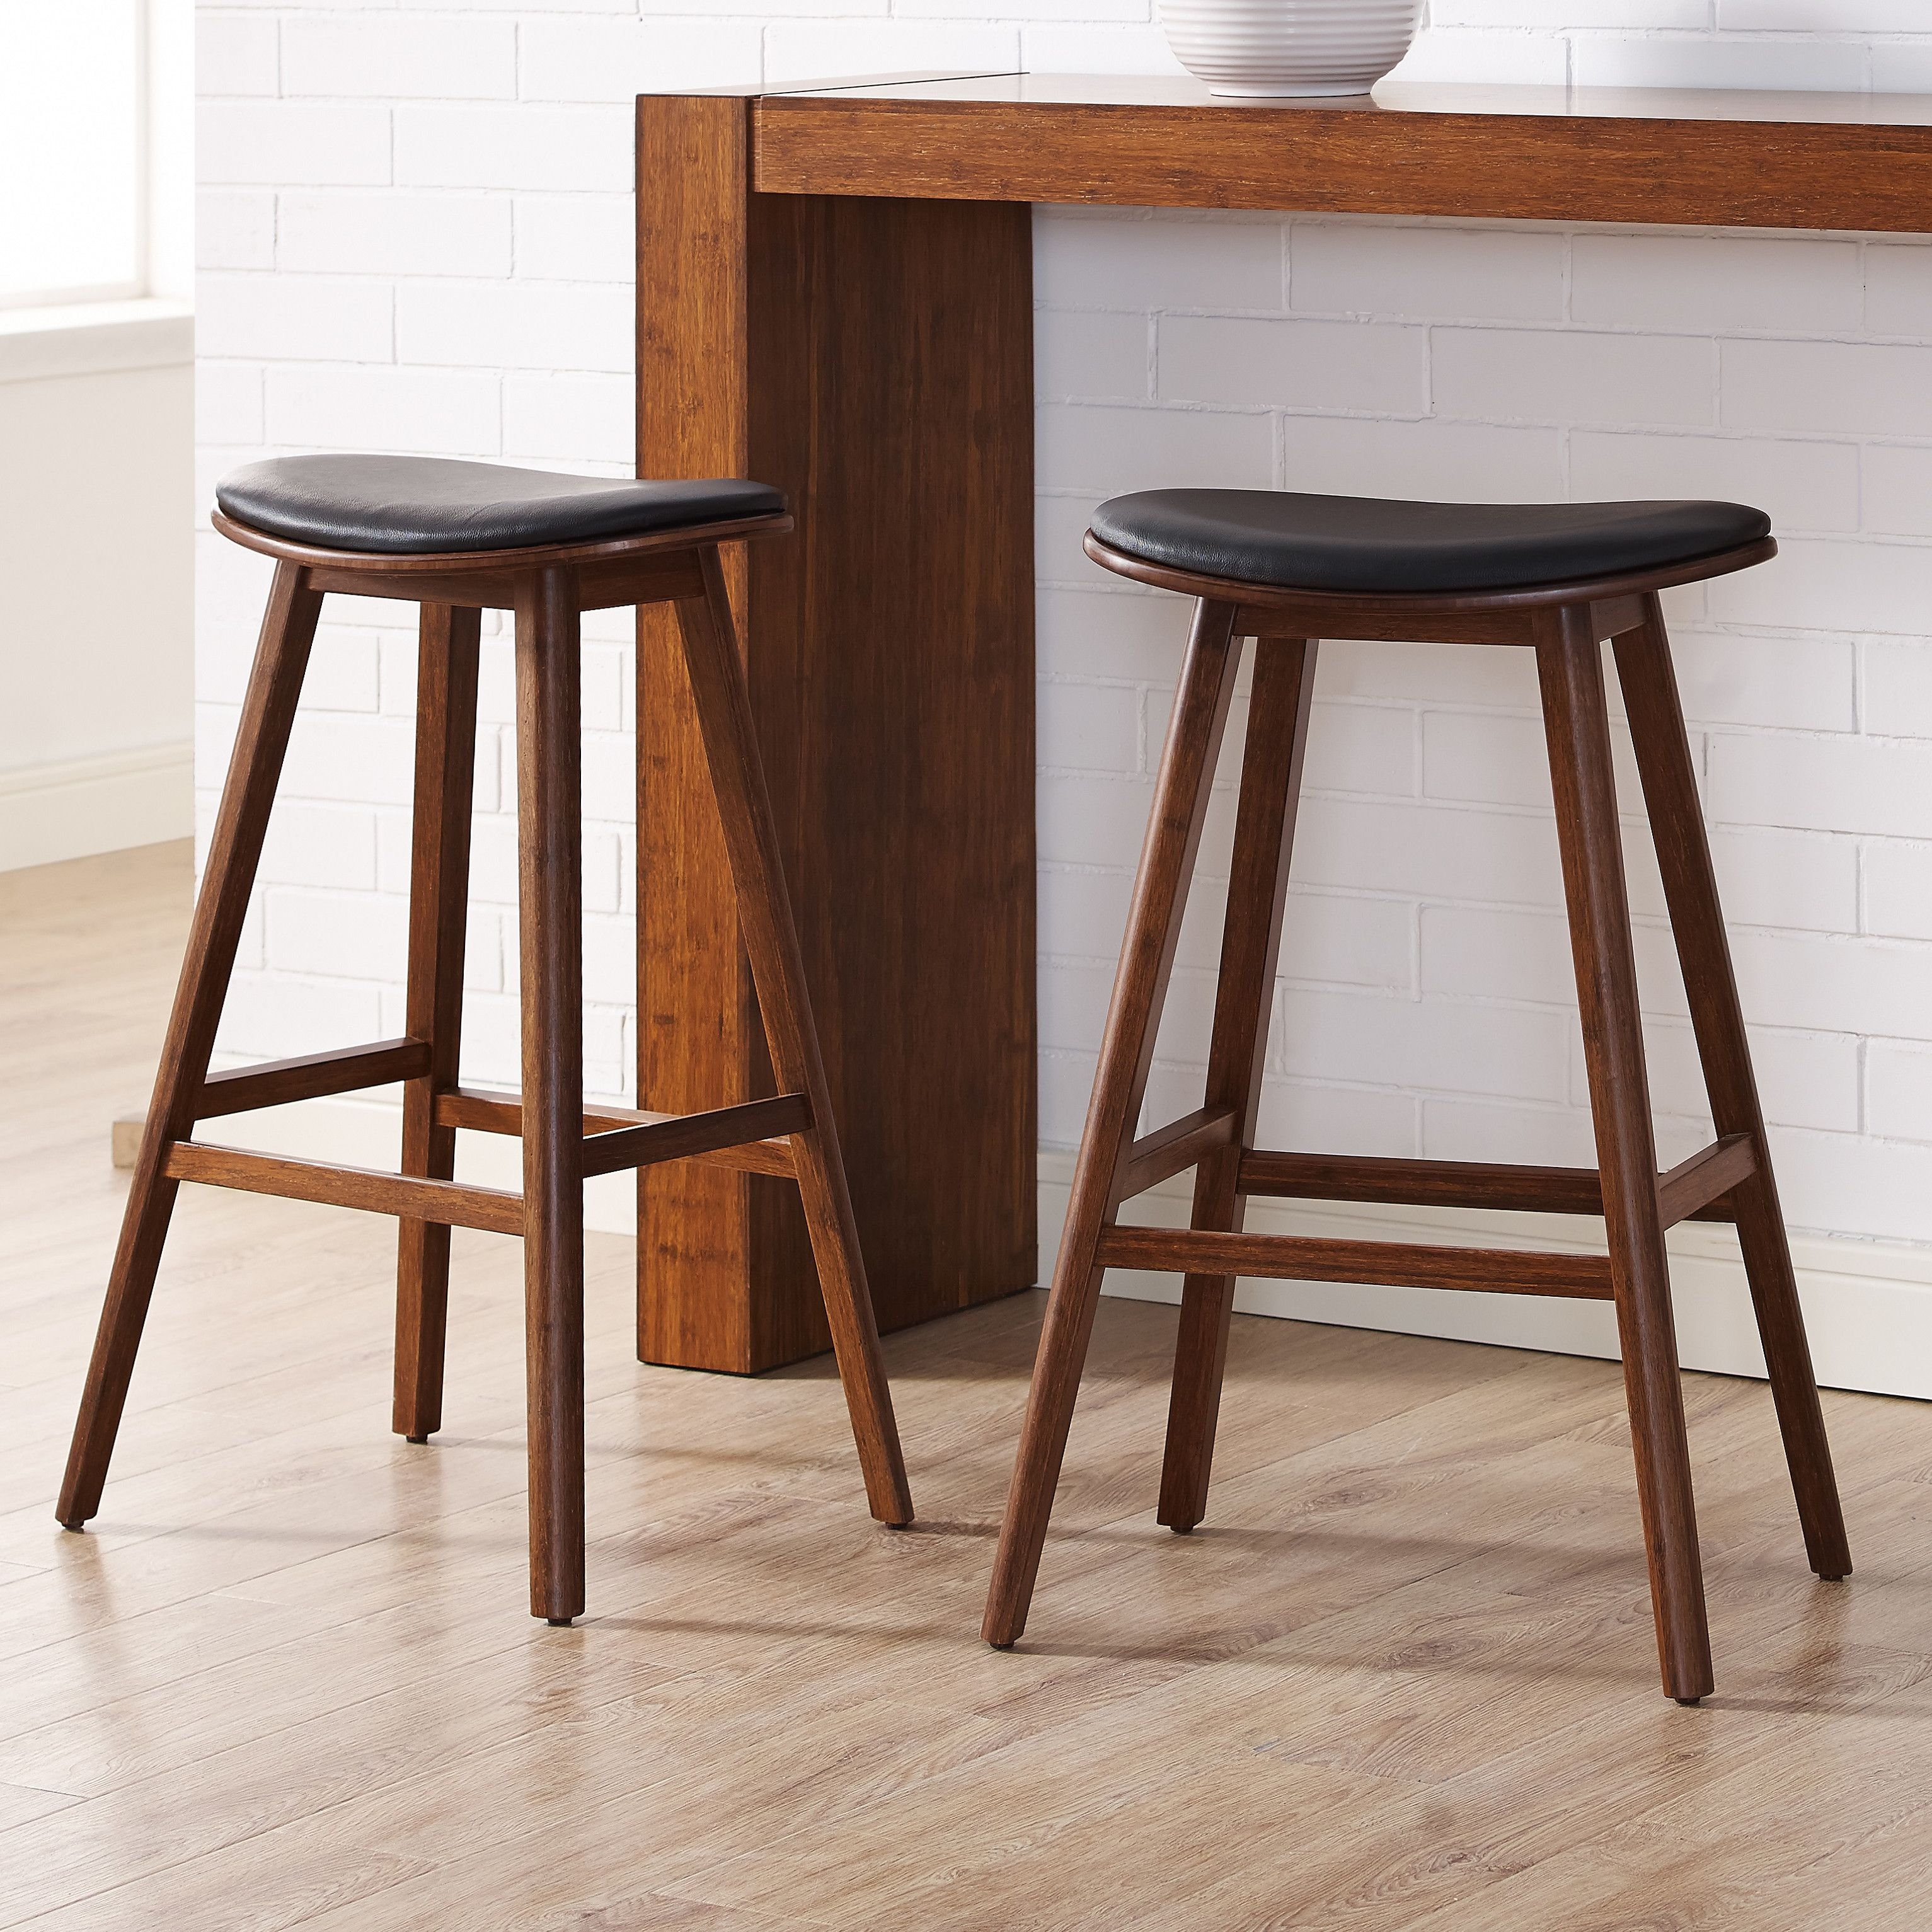 "Bar Table With Stools For Kitchen: Corona 26"" Bar Stool"